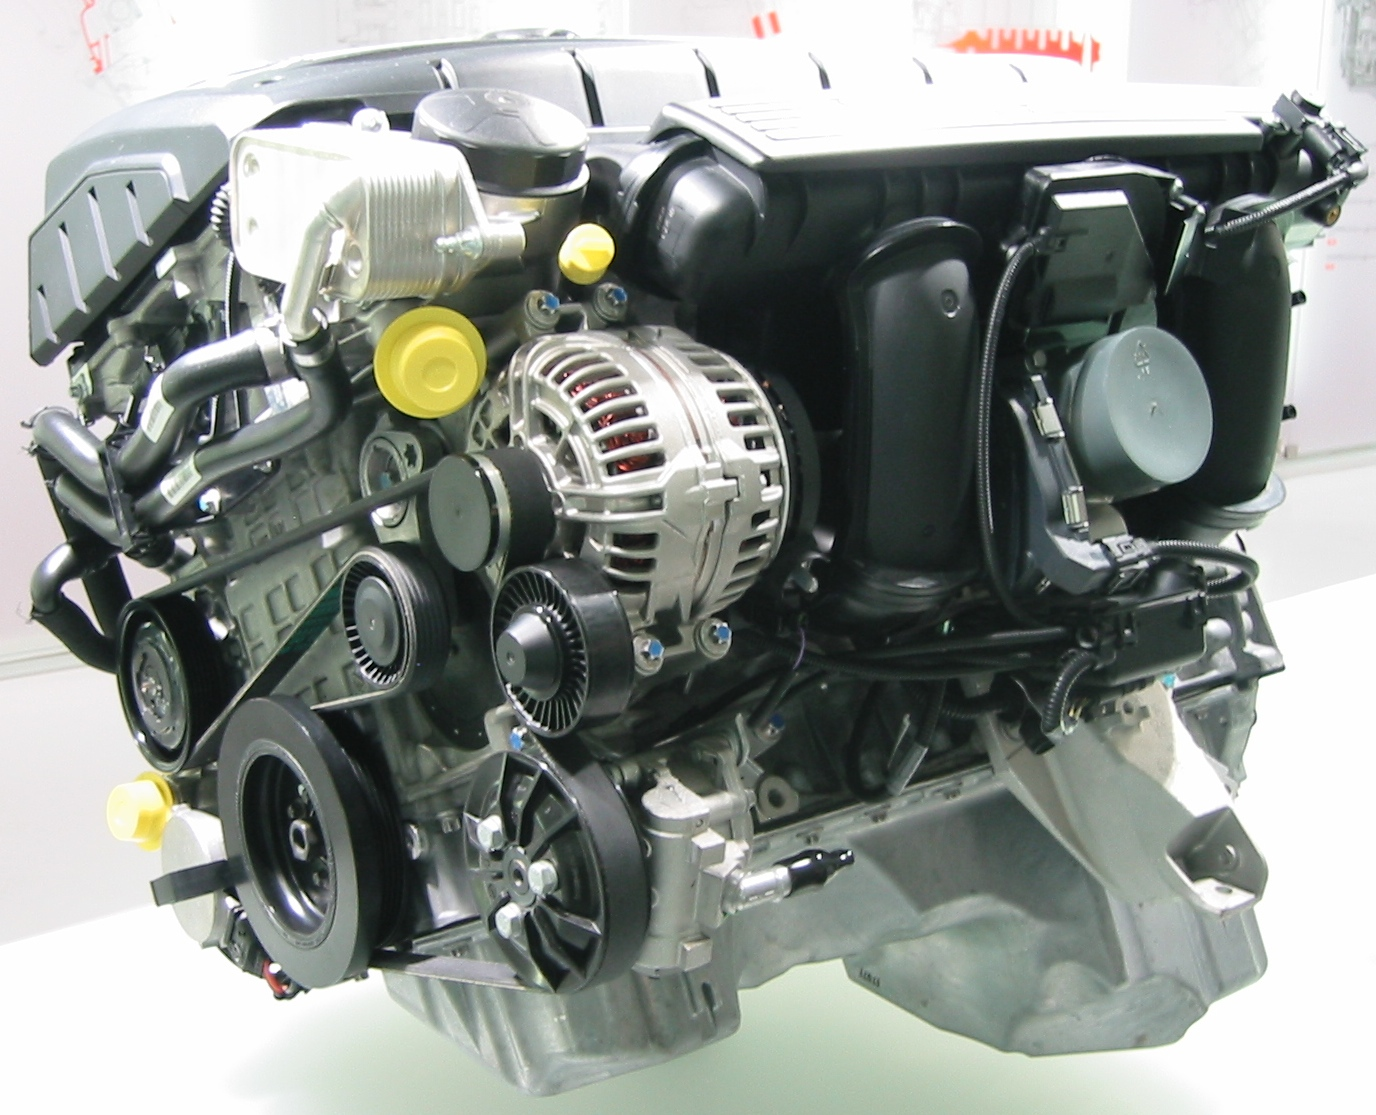 Bmw N52 Wikipedia 318ti Engine Diagram Intake Shown From The Side